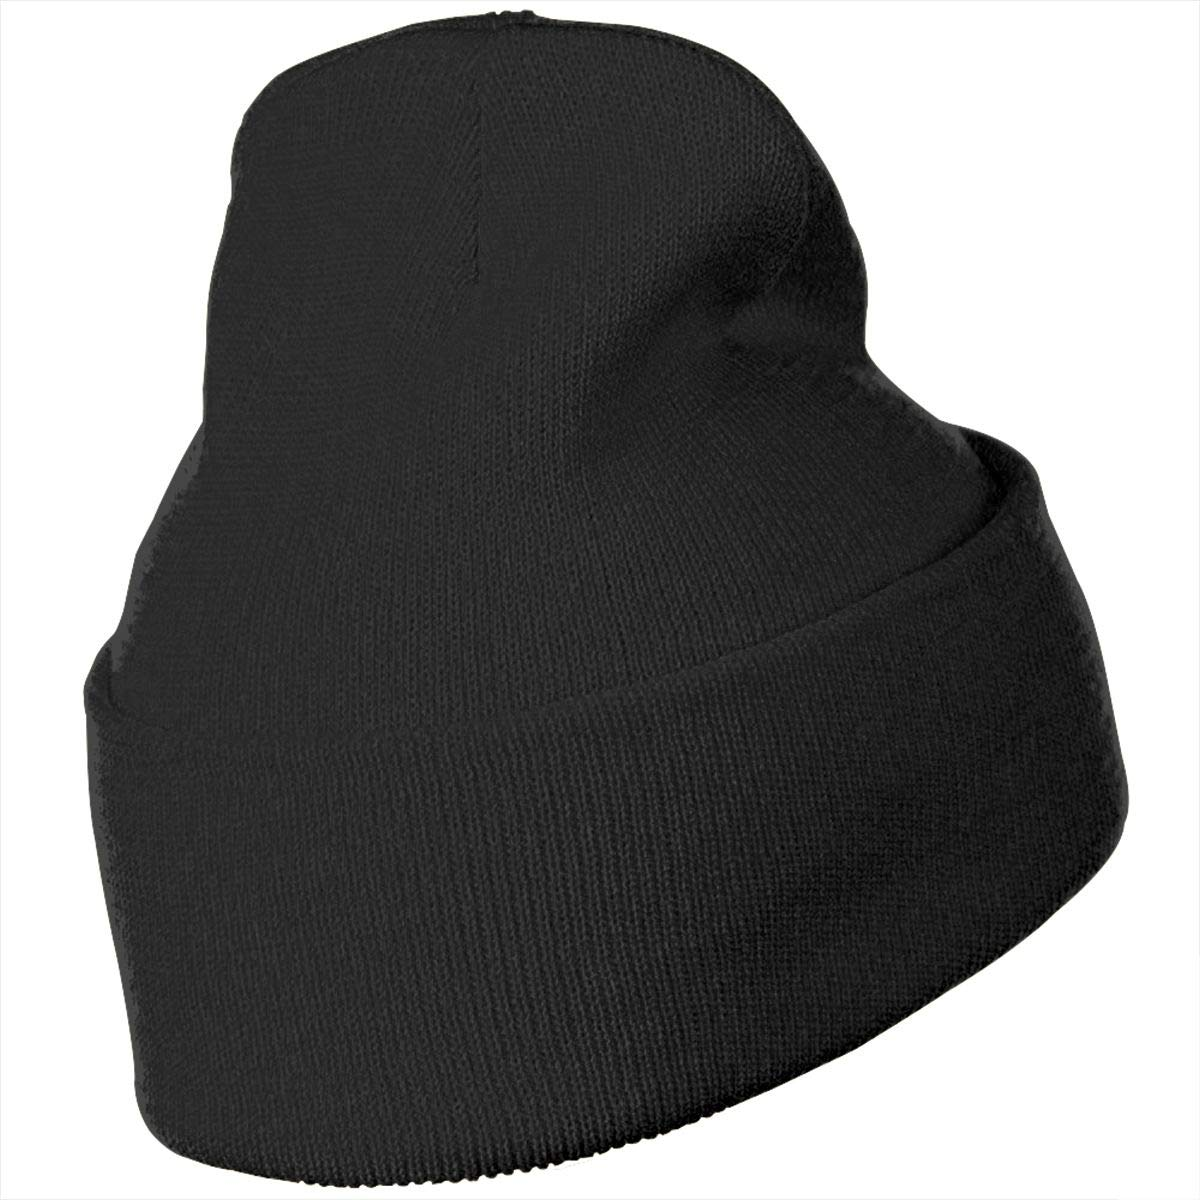 45aad5ae $crim Ruby Da Cherry Uicideboy Custom Beanie Hat Unisex Adult Hats Winter  Warm Knit Ski Skull Cap, Black at Amazon Men's Clothing store: